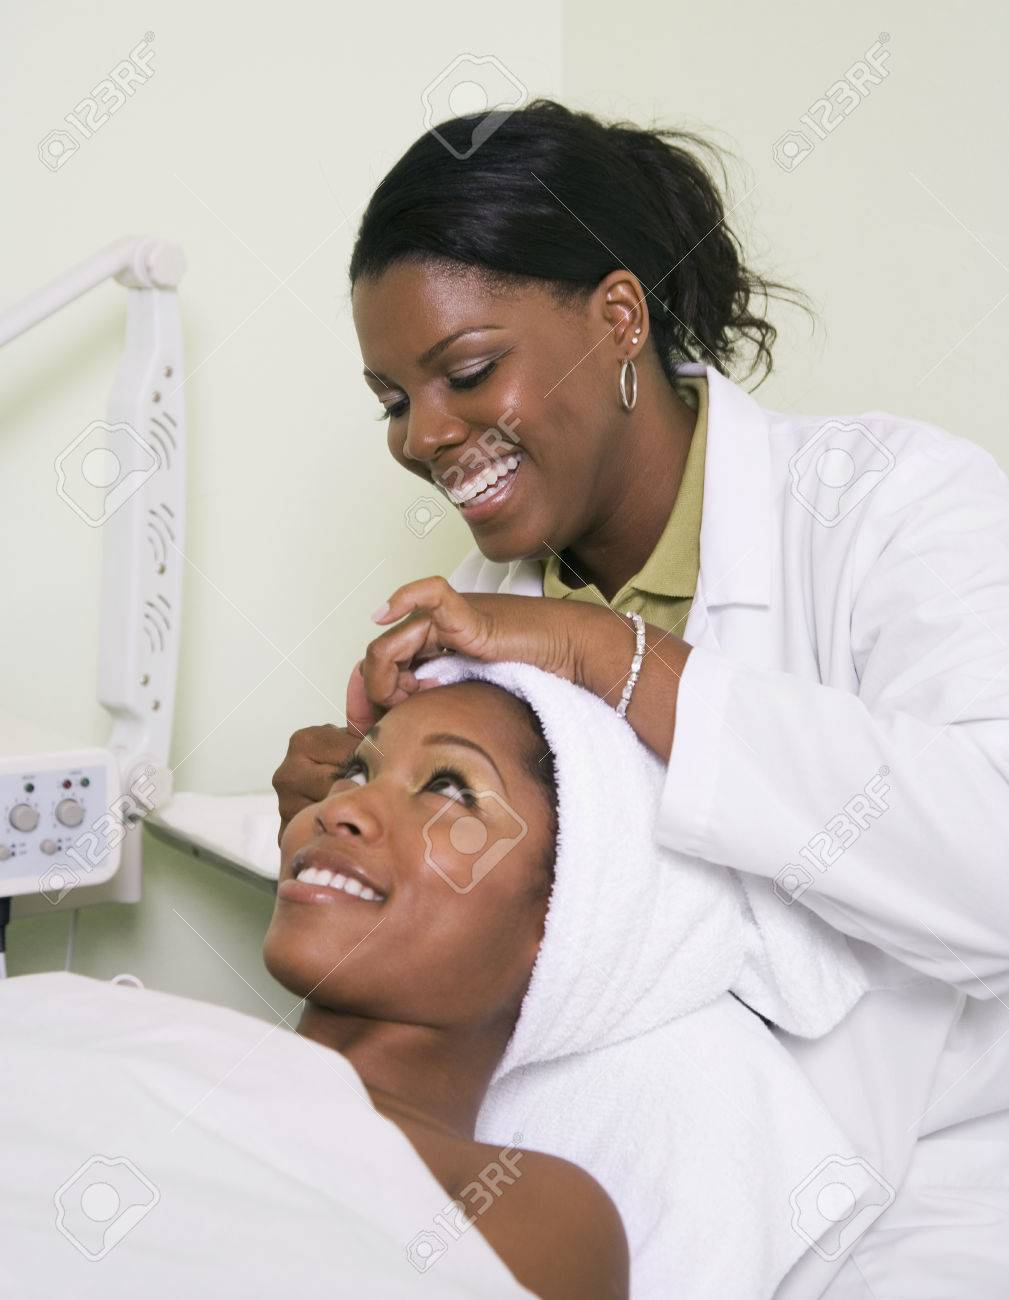 African Woman Receiving Spa Facial Treatment Stock Photo Picture And Royalty Free Image Image 35785723